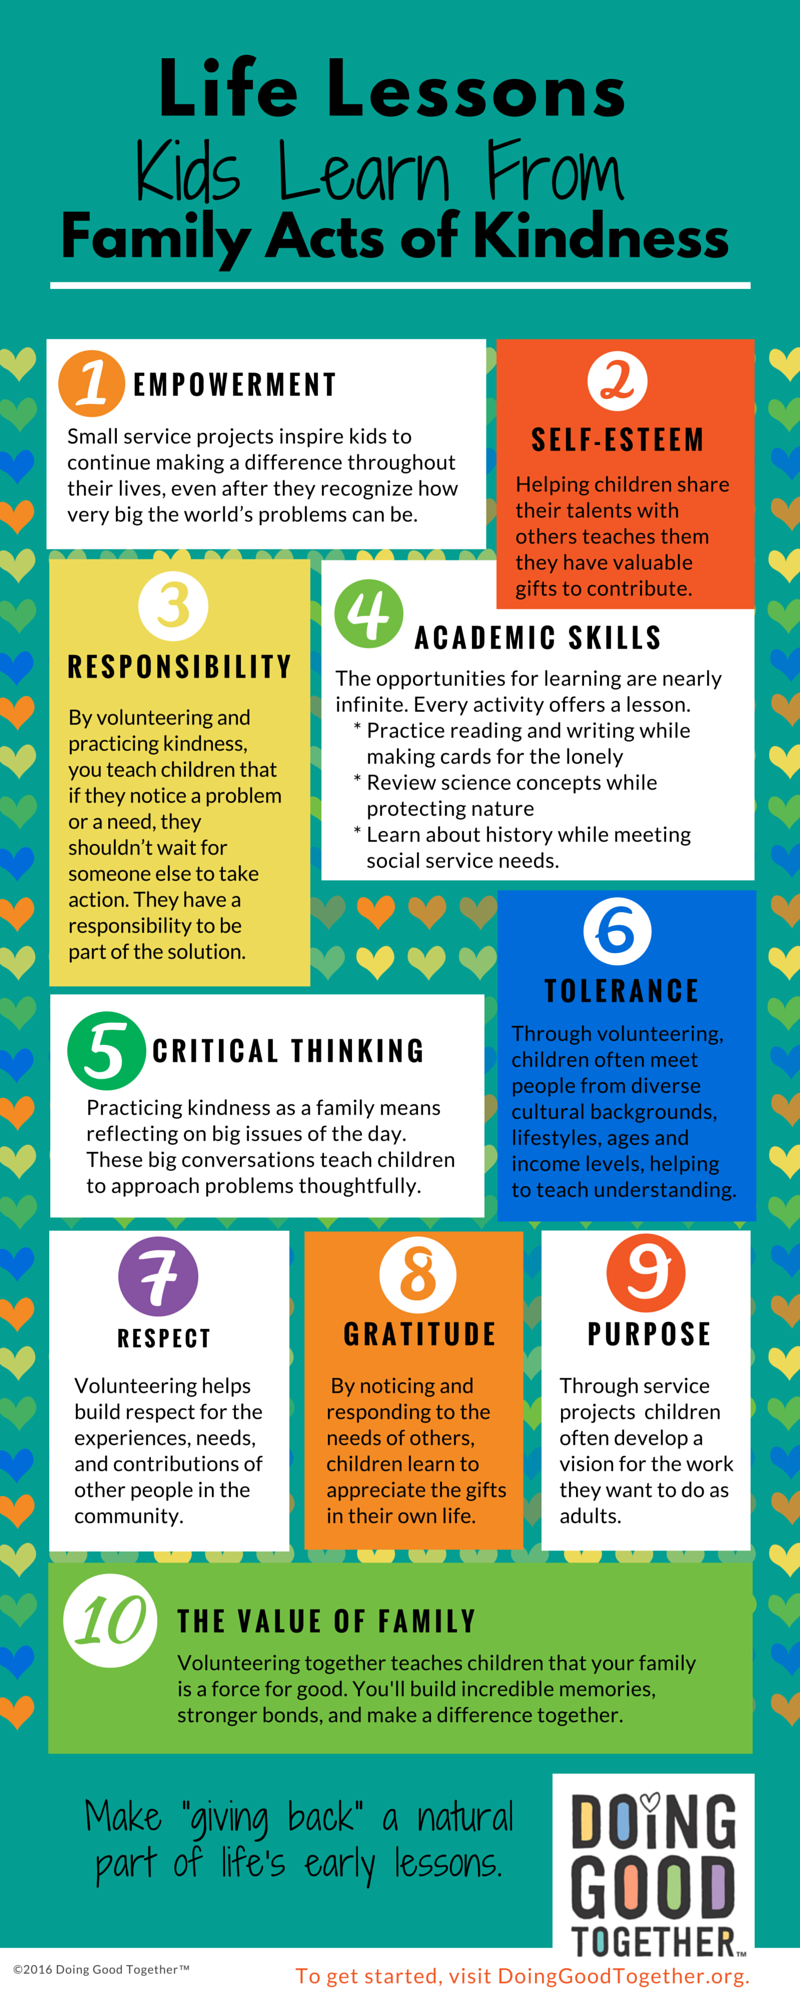 10 Life Lessons Infographic from Doing Good Together.org